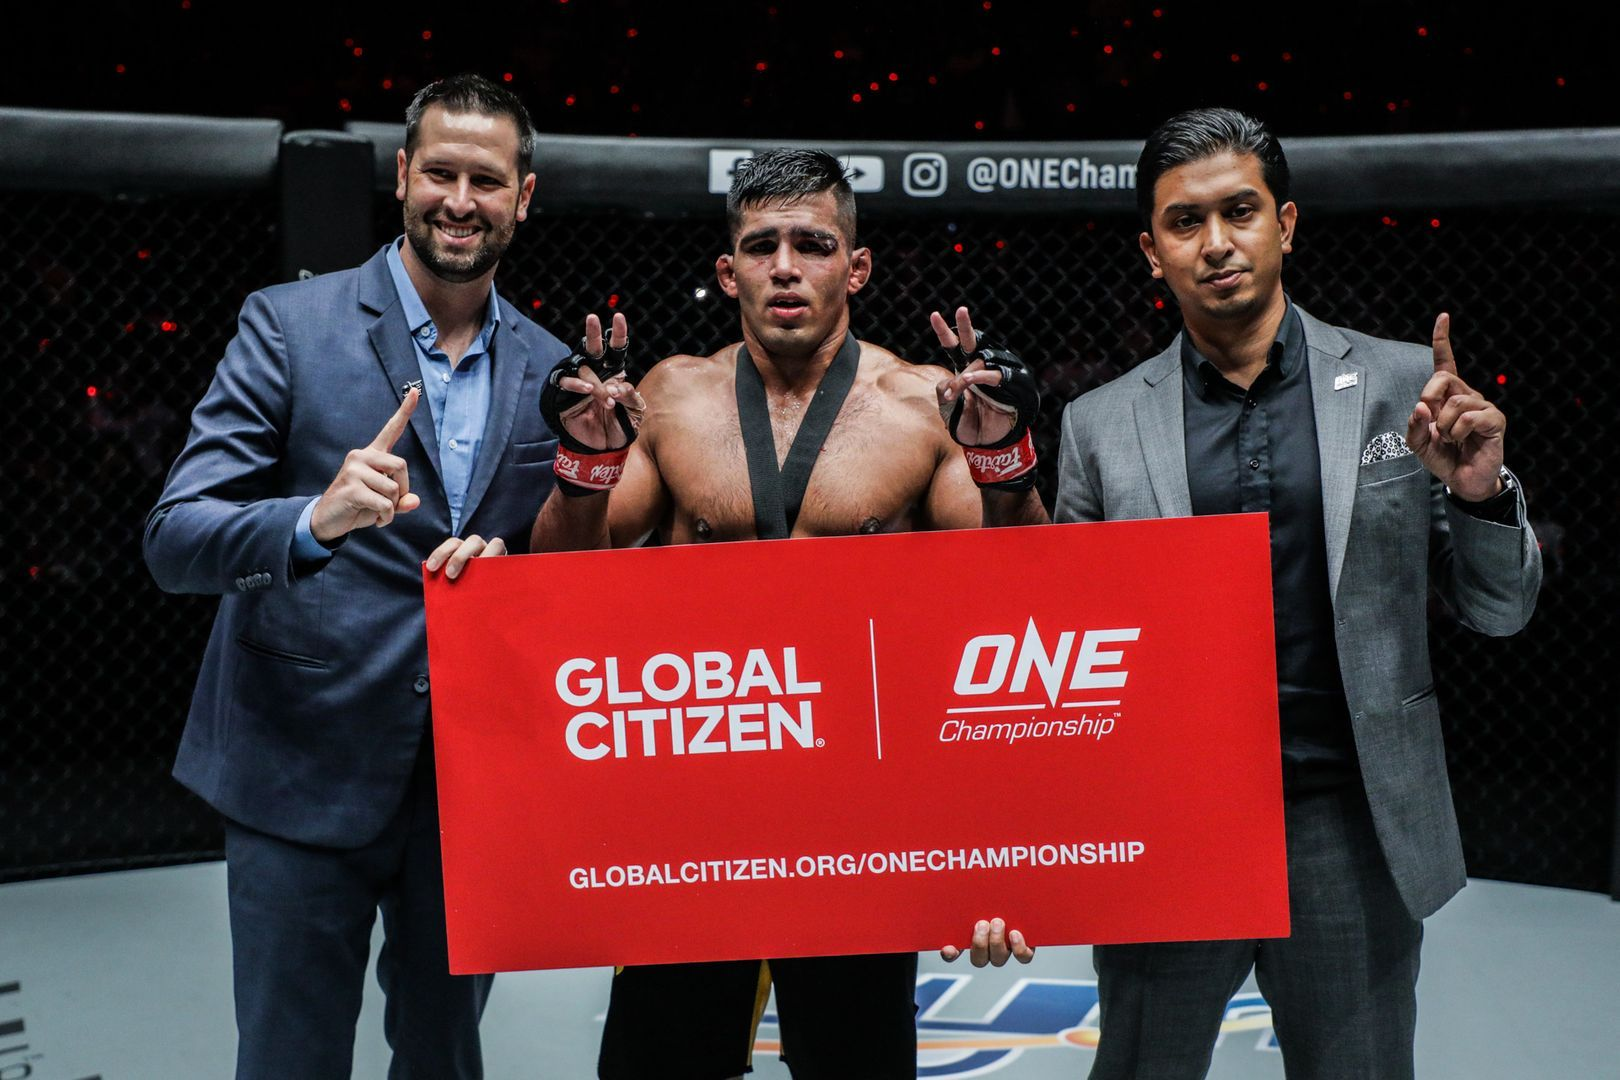 ONE Championship executives stand with Agilan Thani following his win in Kuala Lumpur, Malaysia